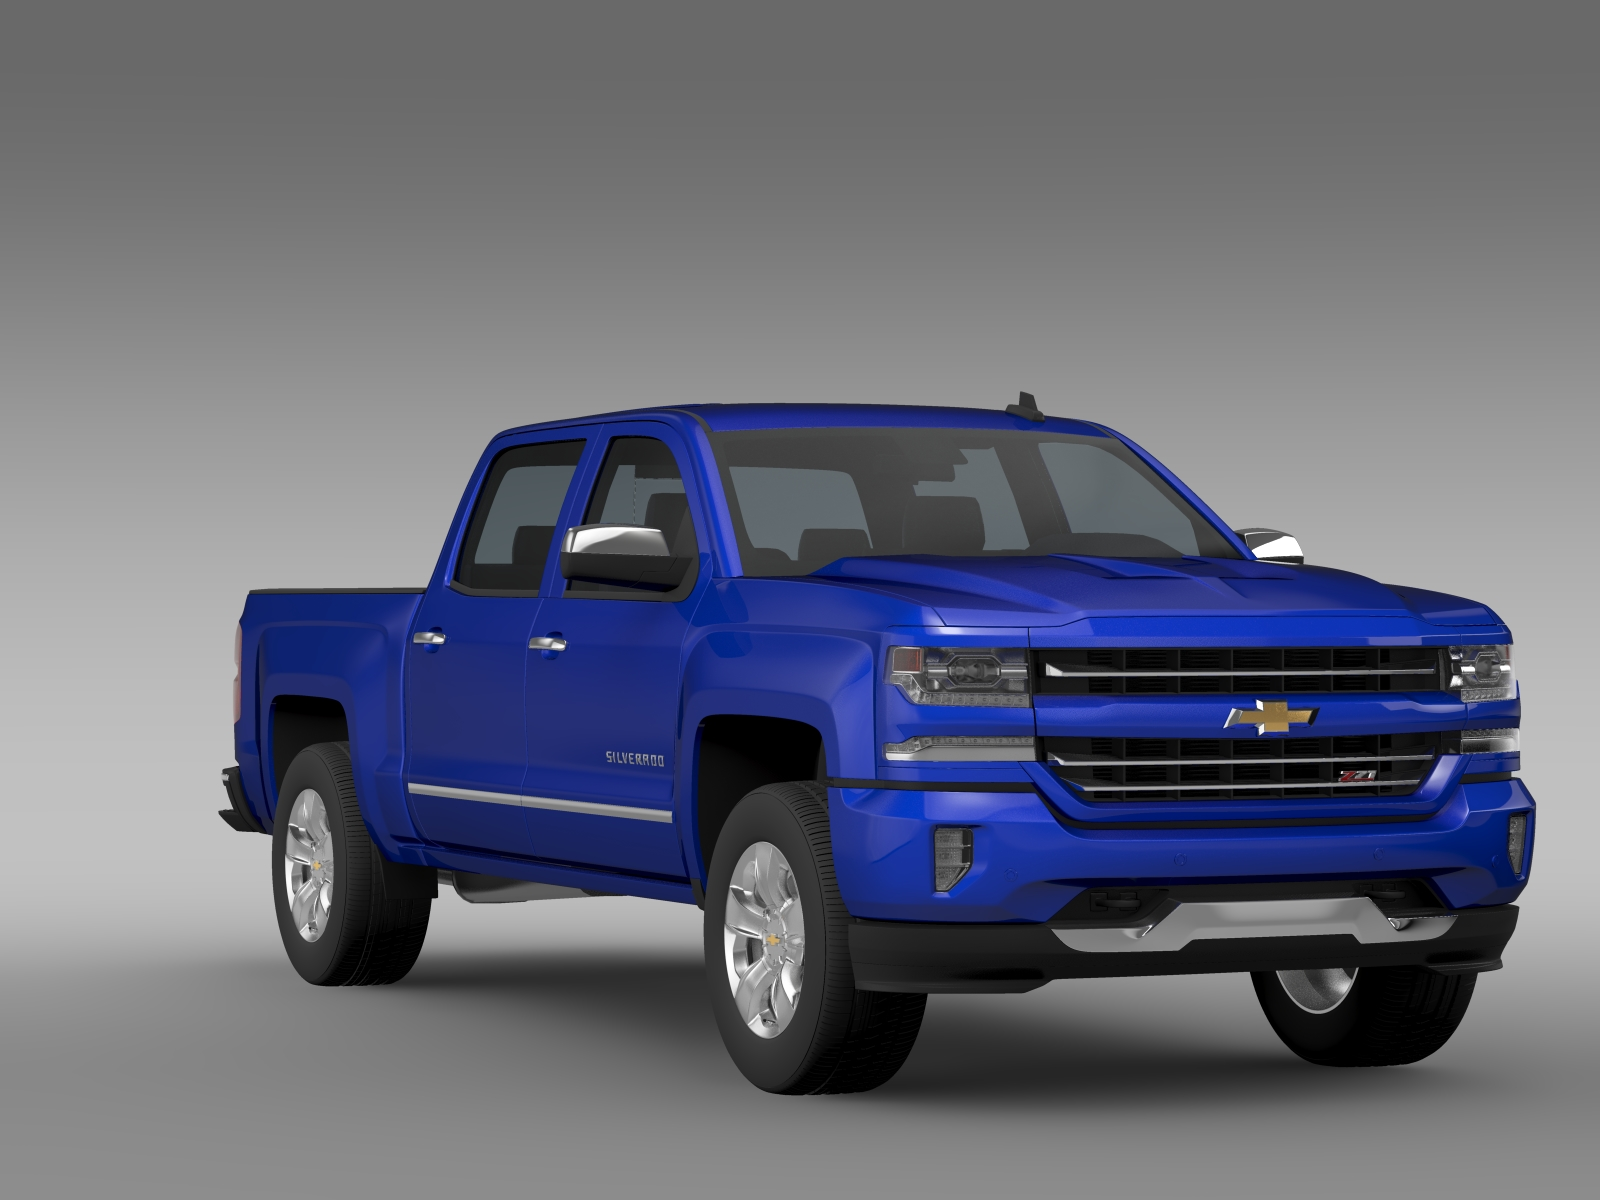 chevrolet silverado ltz z71 crew cab gmtk2 shbox 3d model buy chevrolet silverado ltz z71. Black Bedroom Furniture Sets. Home Design Ideas